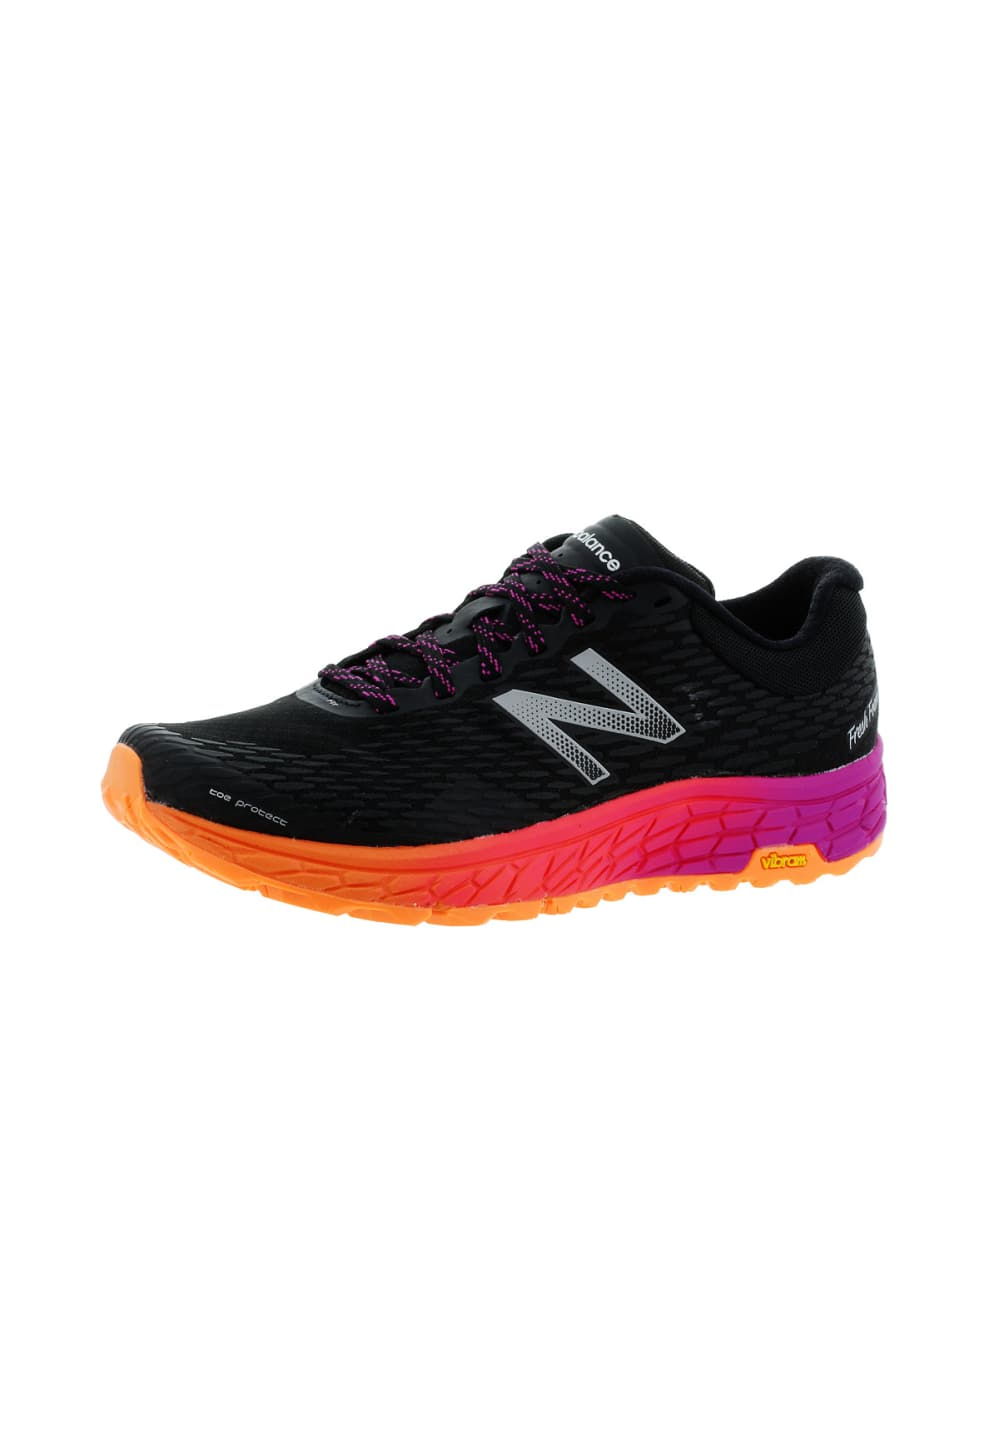 save off 8ea98 fa7a6 Next. New Balance. Fresh Foam Hierro - Chaussures running pour Femme